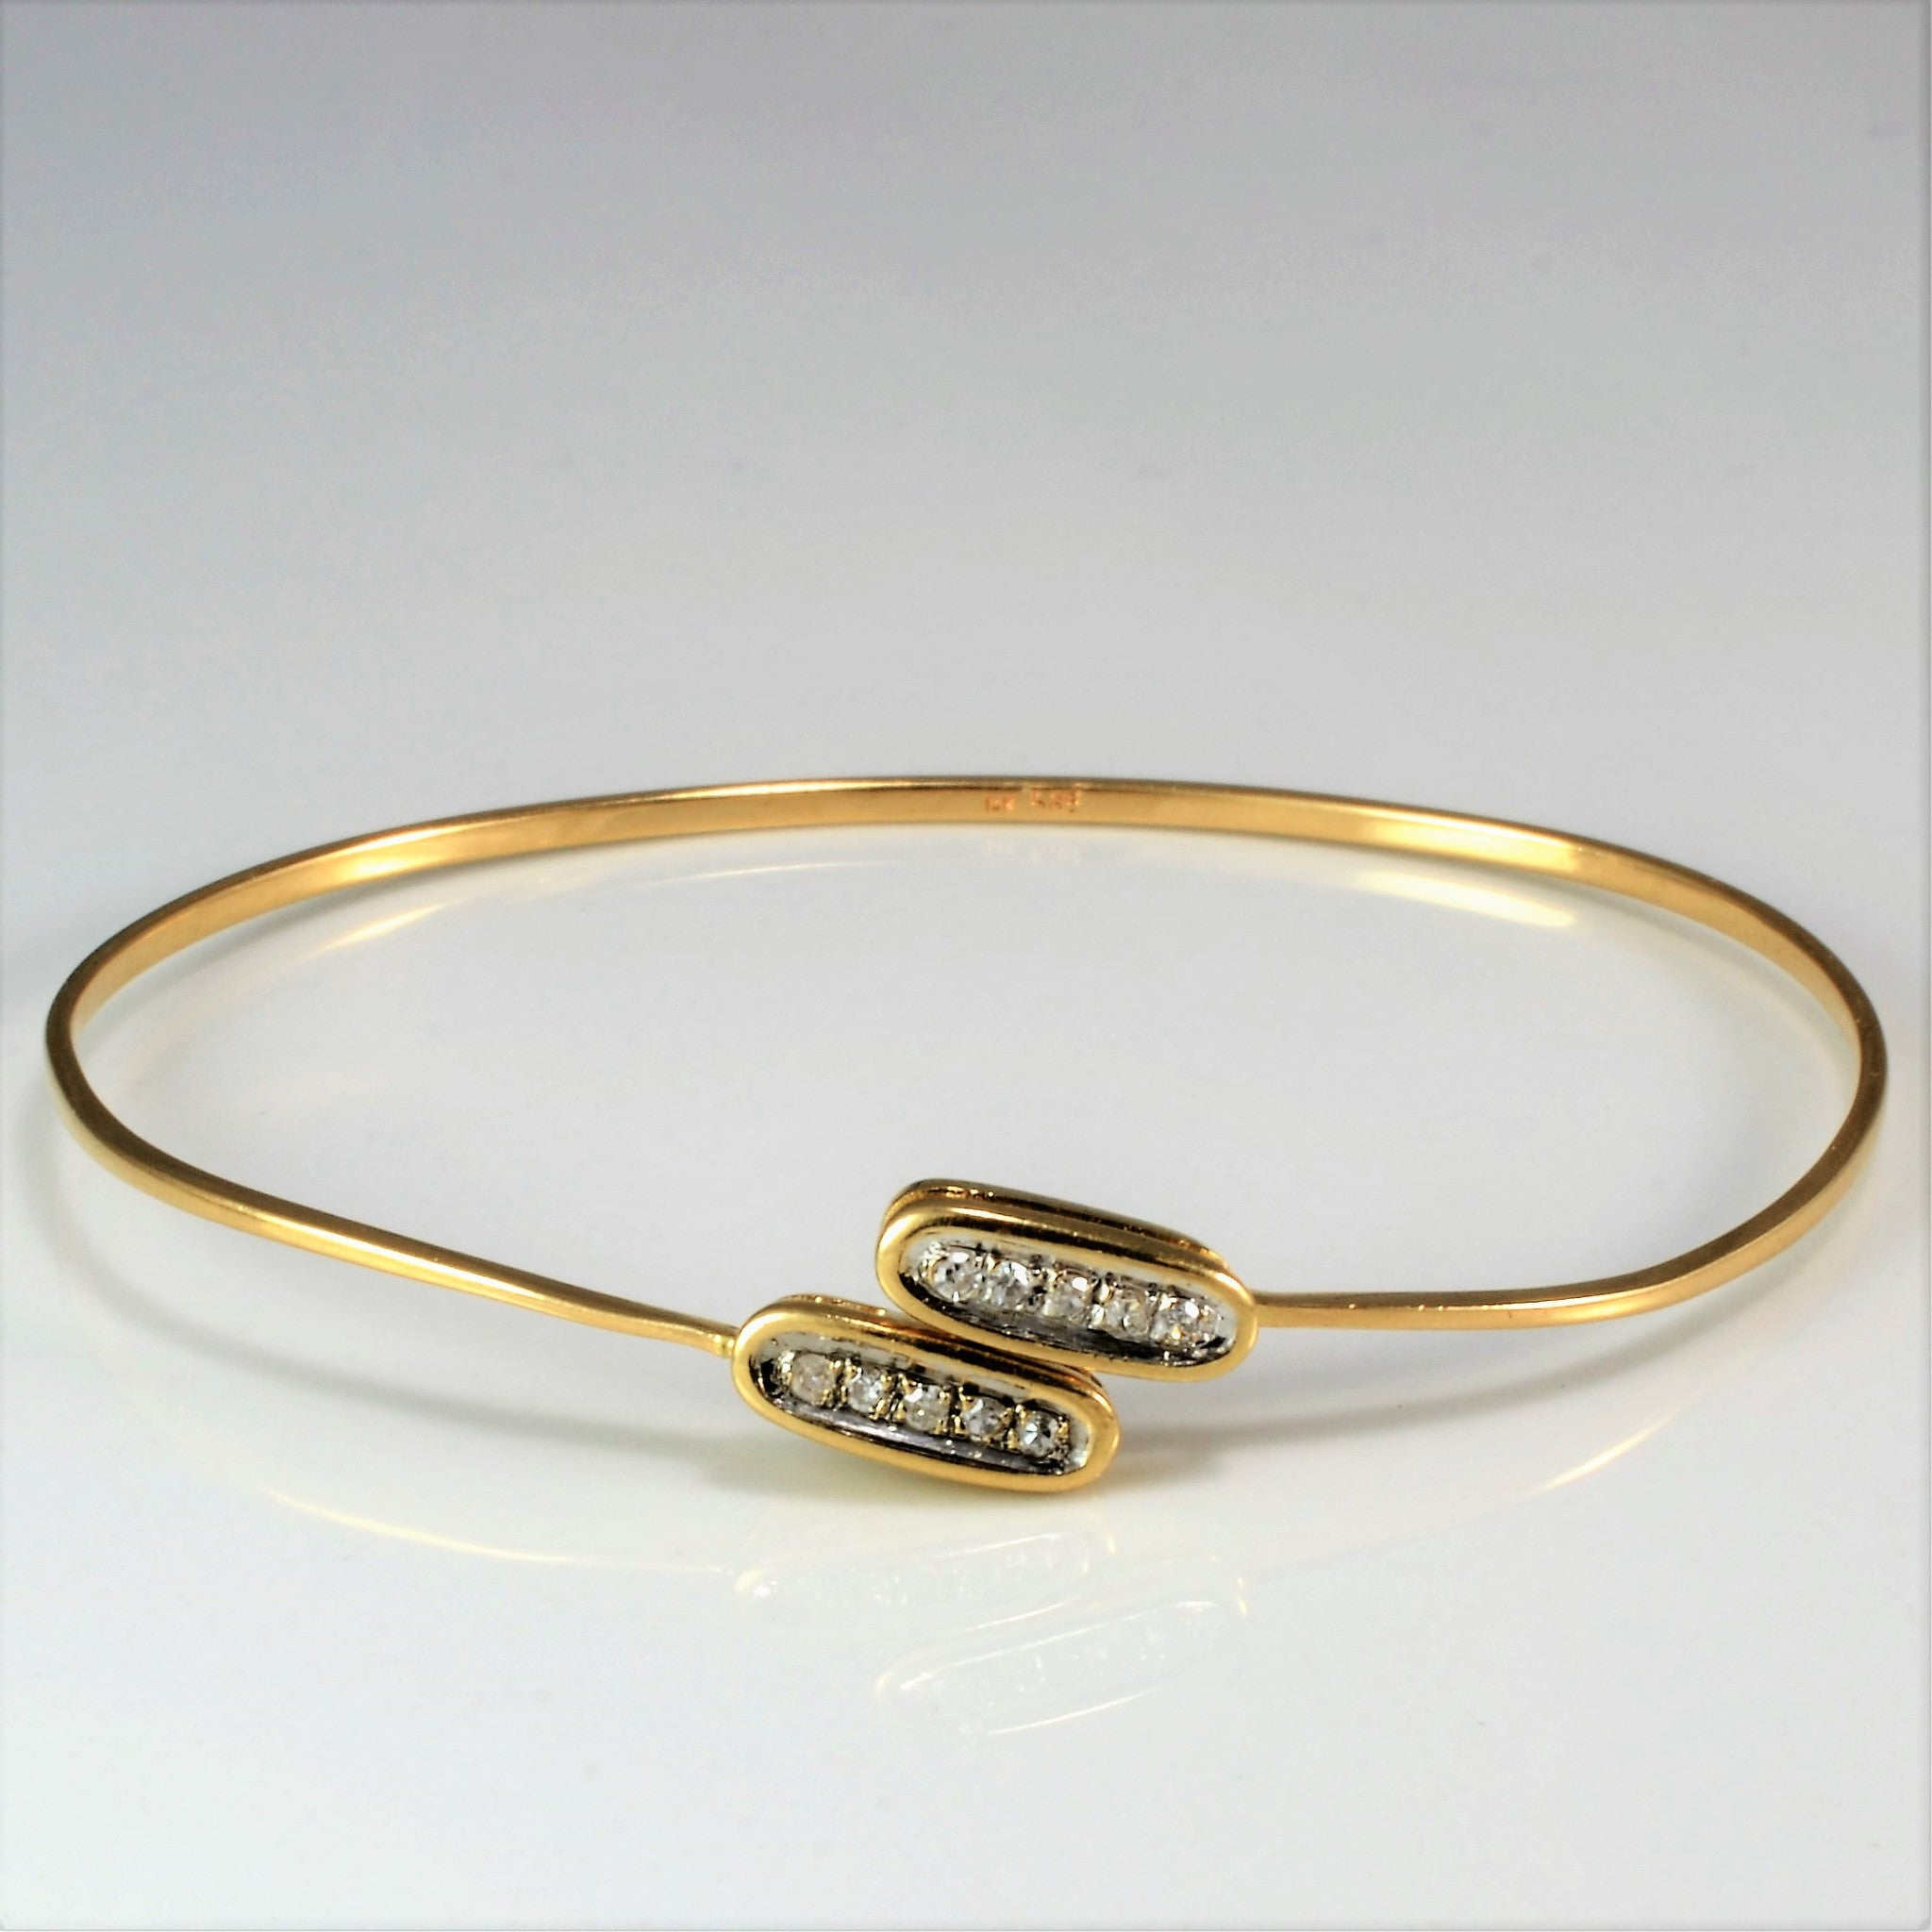 gold link anchormarine marine w bangles clasp bangle solid chain david bracelet anchor lobster star claw product